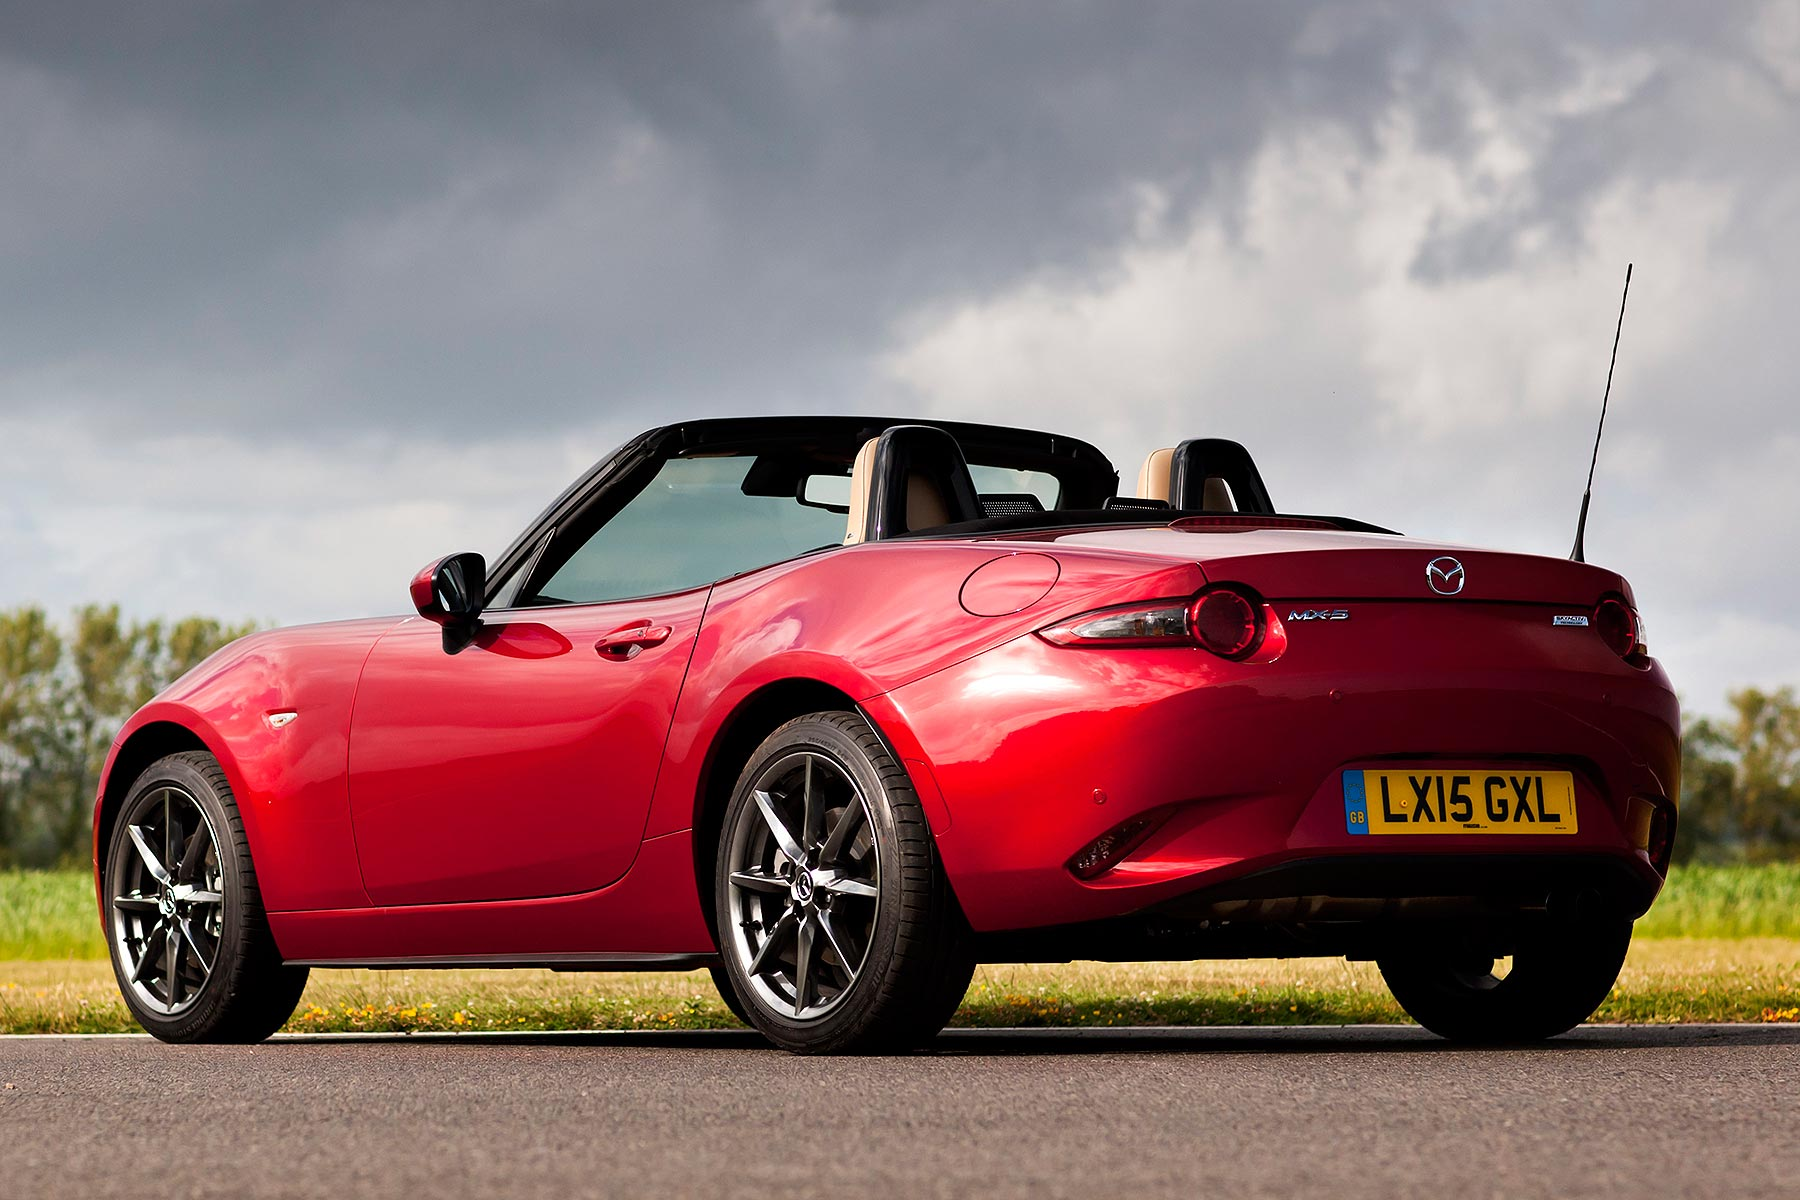 mazda mx 5 1 5 review 2015 preview drive motoring research. Black Bedroom Furniture Sets. Home Design Ideas